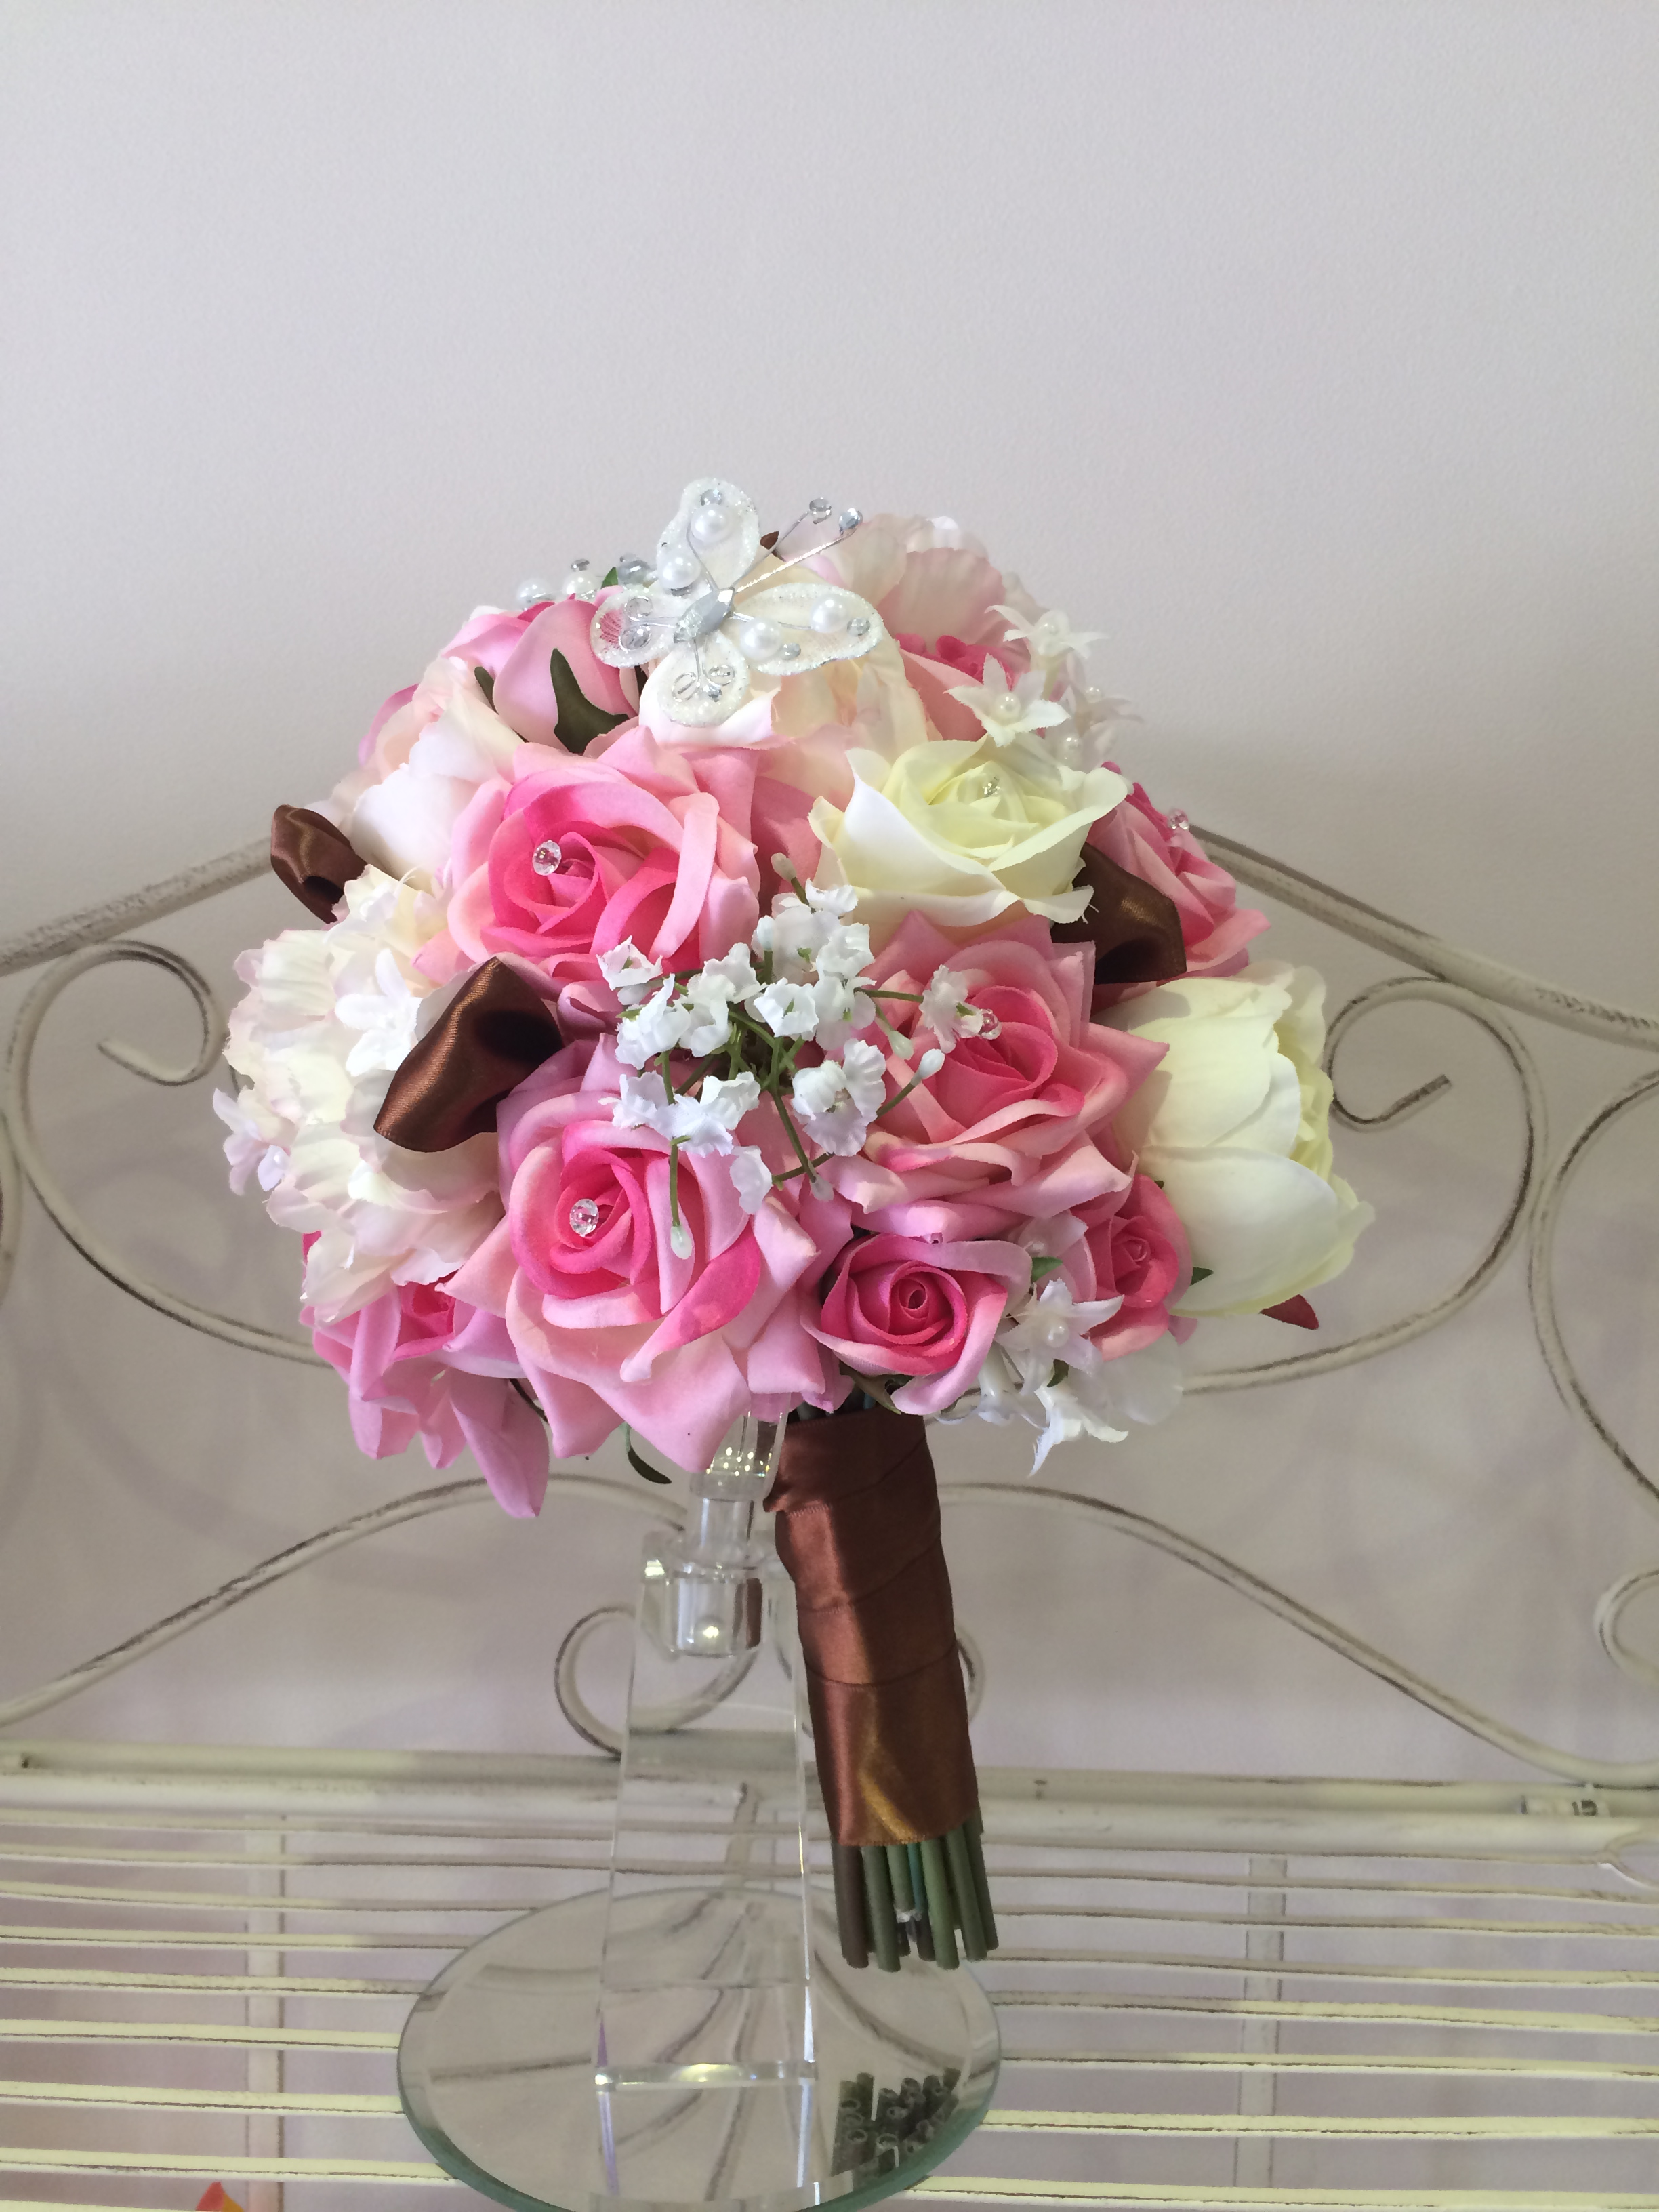 Brides Handtied Bouquet With Pale Pink Roses, Pink & Cream Roses With Gypsophila